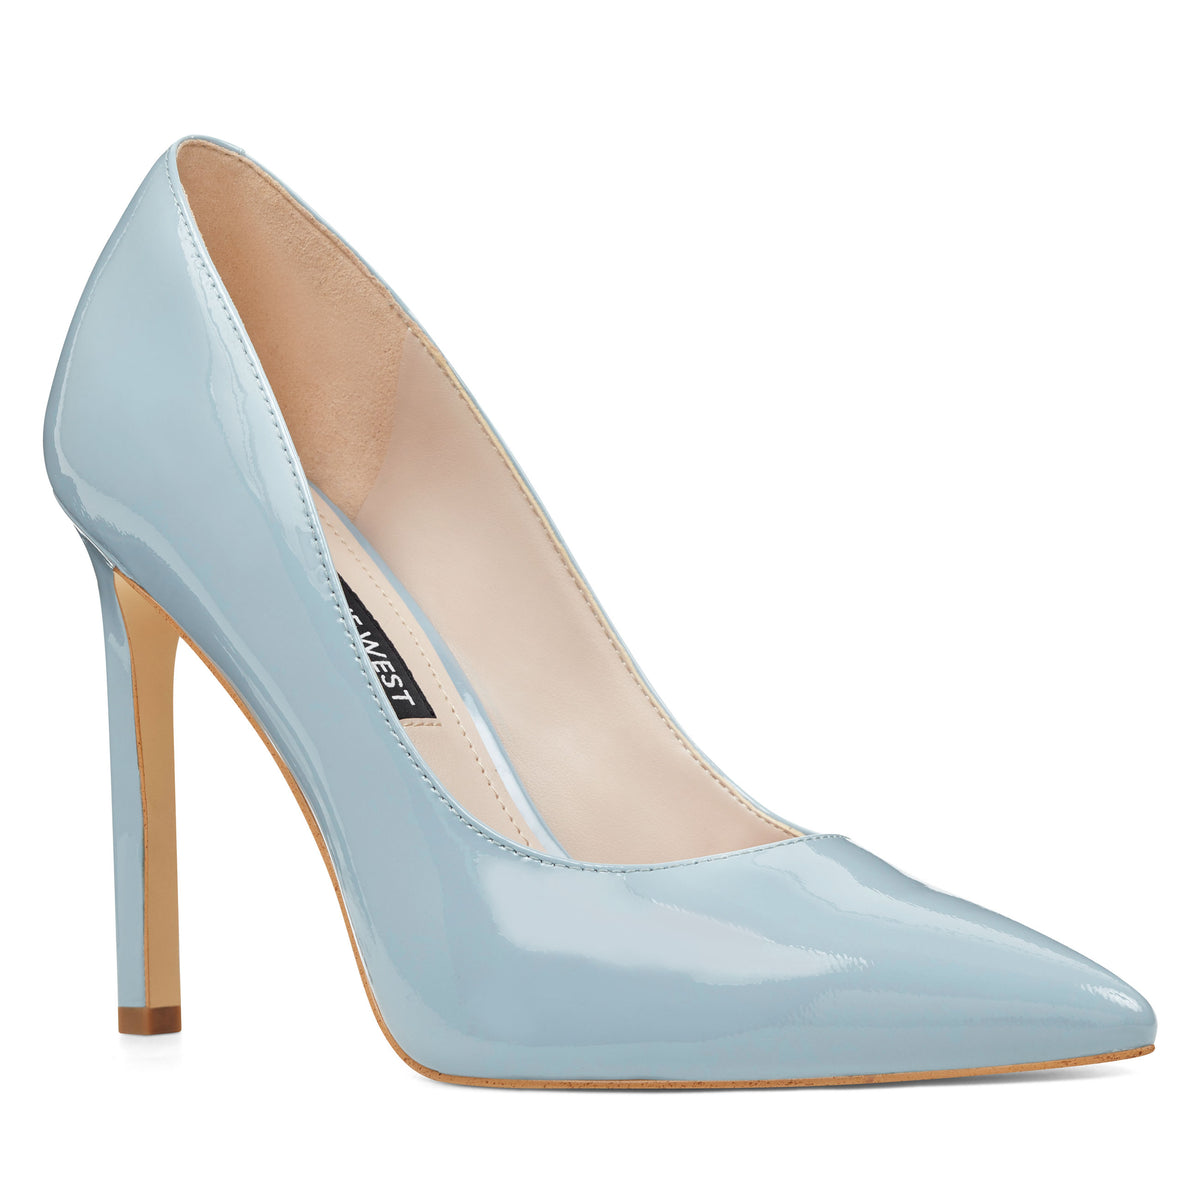 tatiana-pointy-toe-pumps-in-country-blue-patent